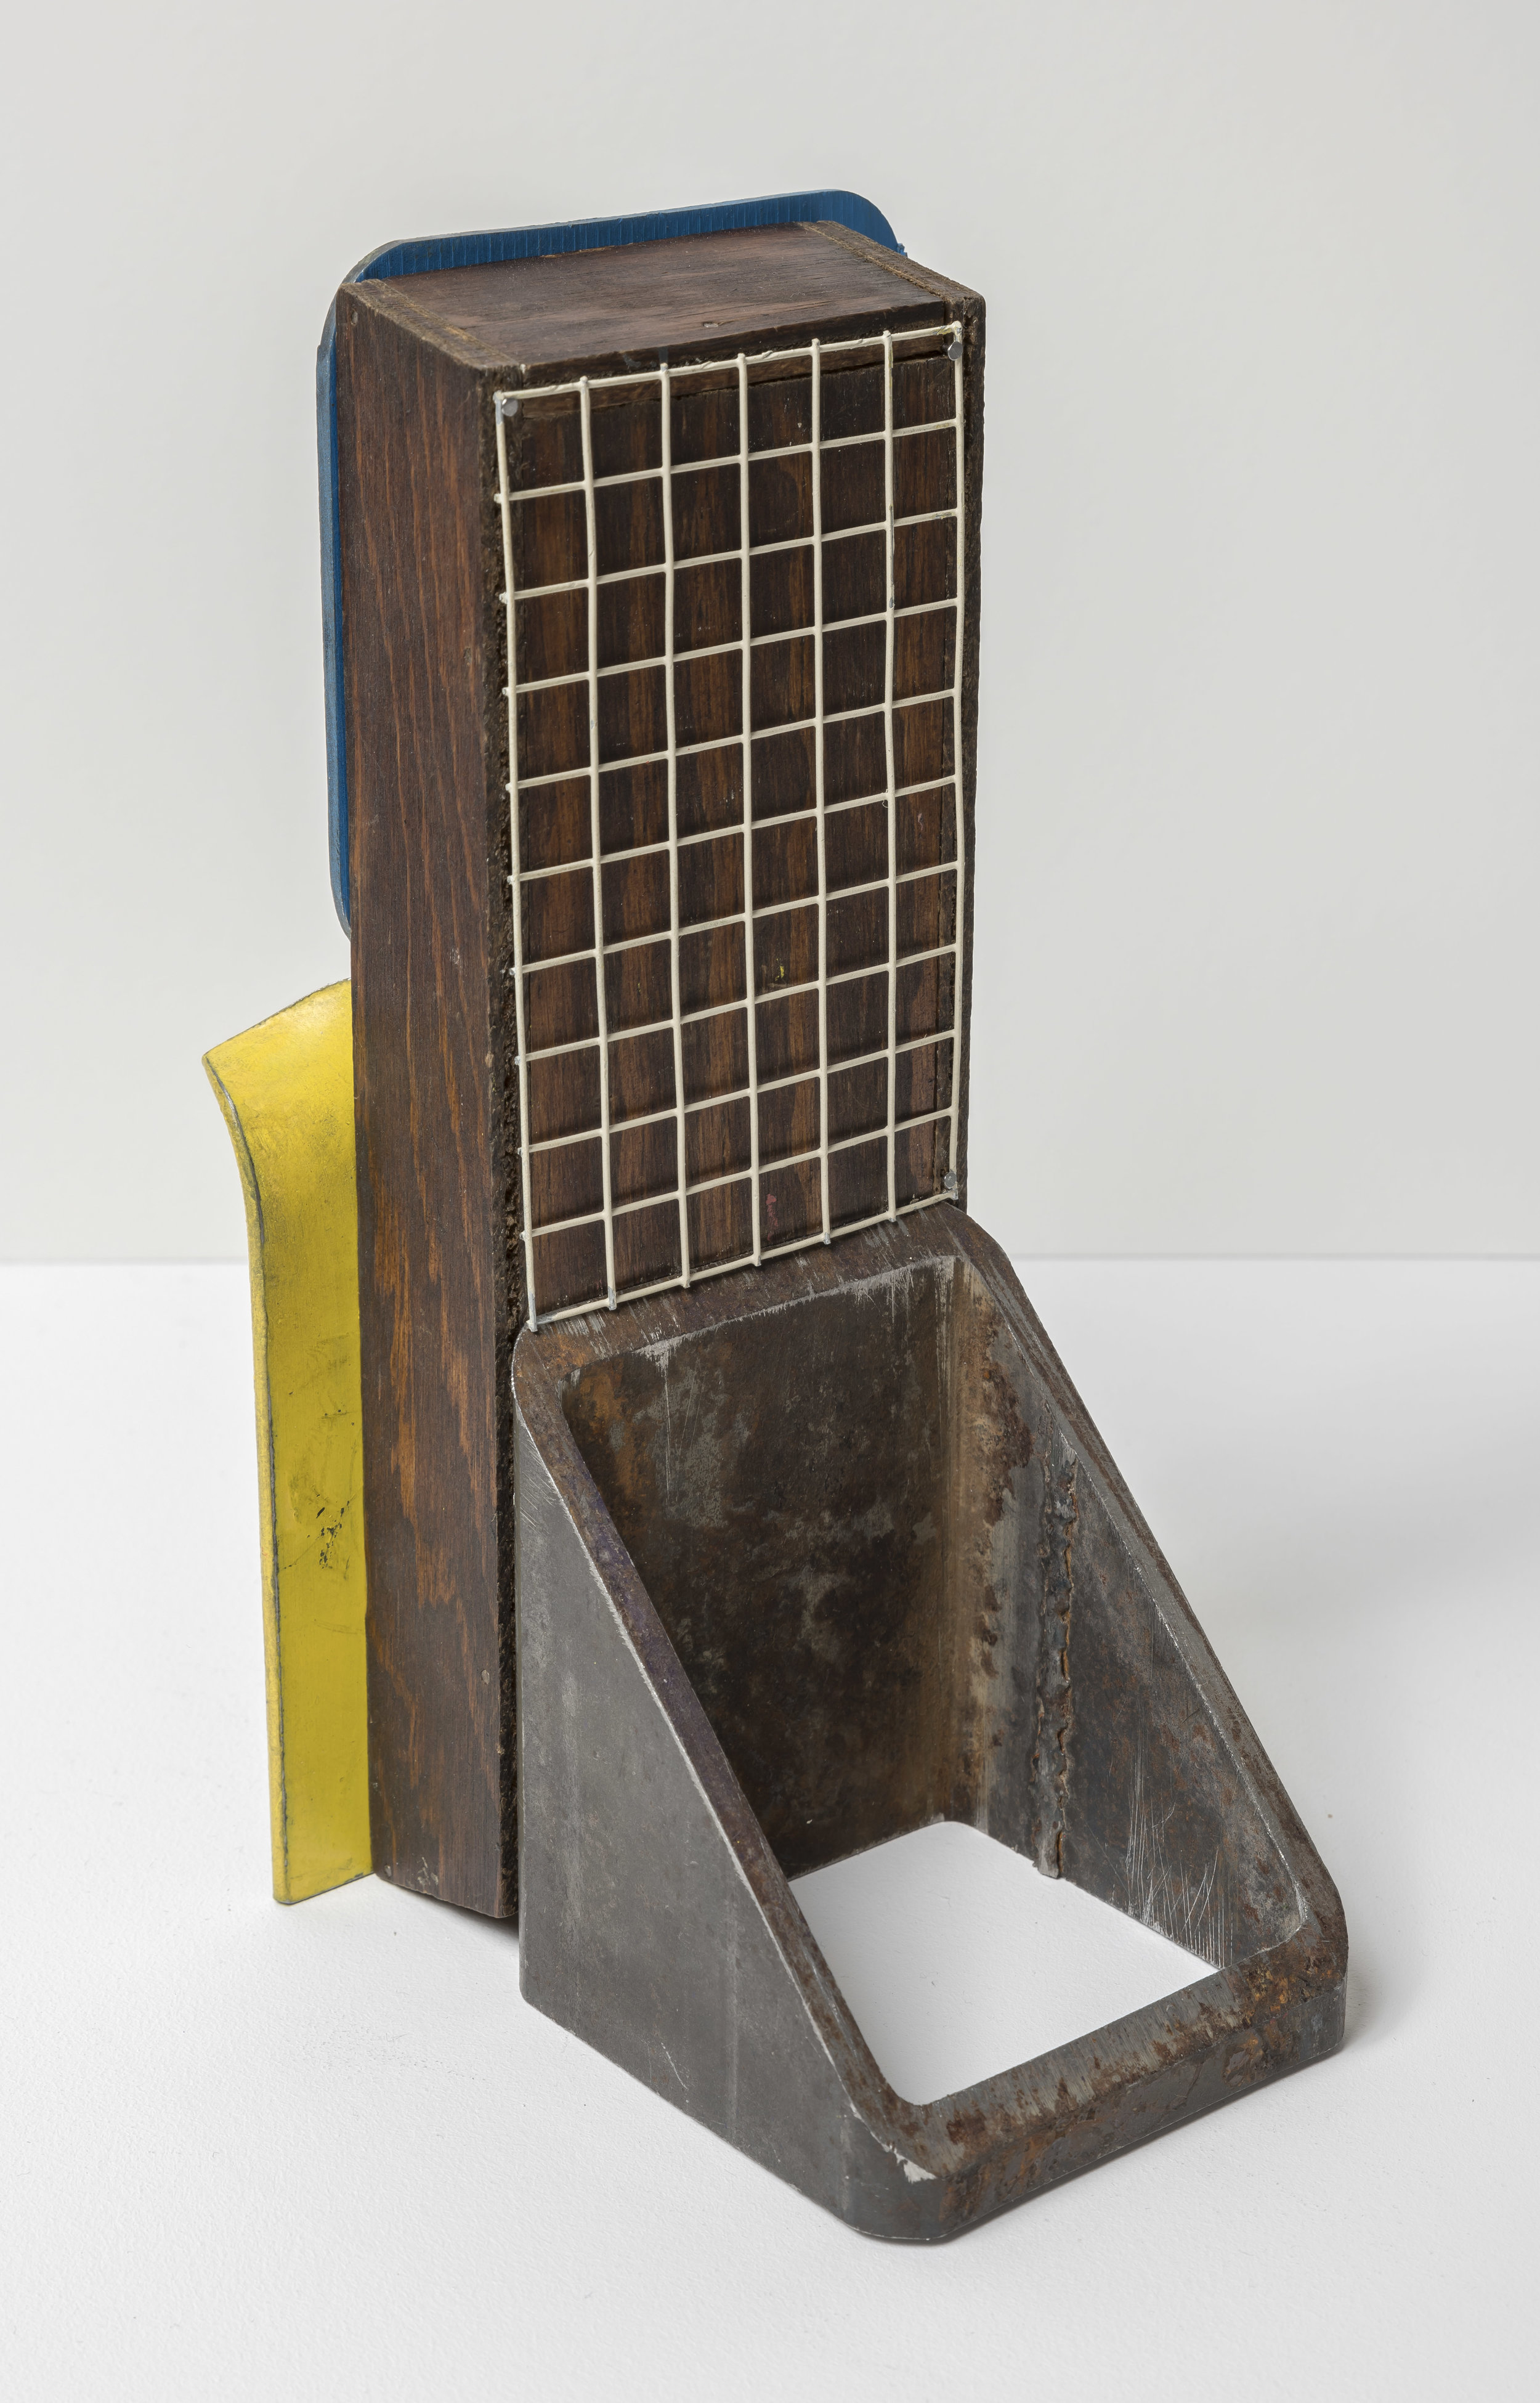 Assemblage IV , 2019  steel, wood, magnet, aerosol paint 4 x 9 1/2 x 5 inches; 10.2 x 24.1 x 12.7 centimeters  $3,000.00